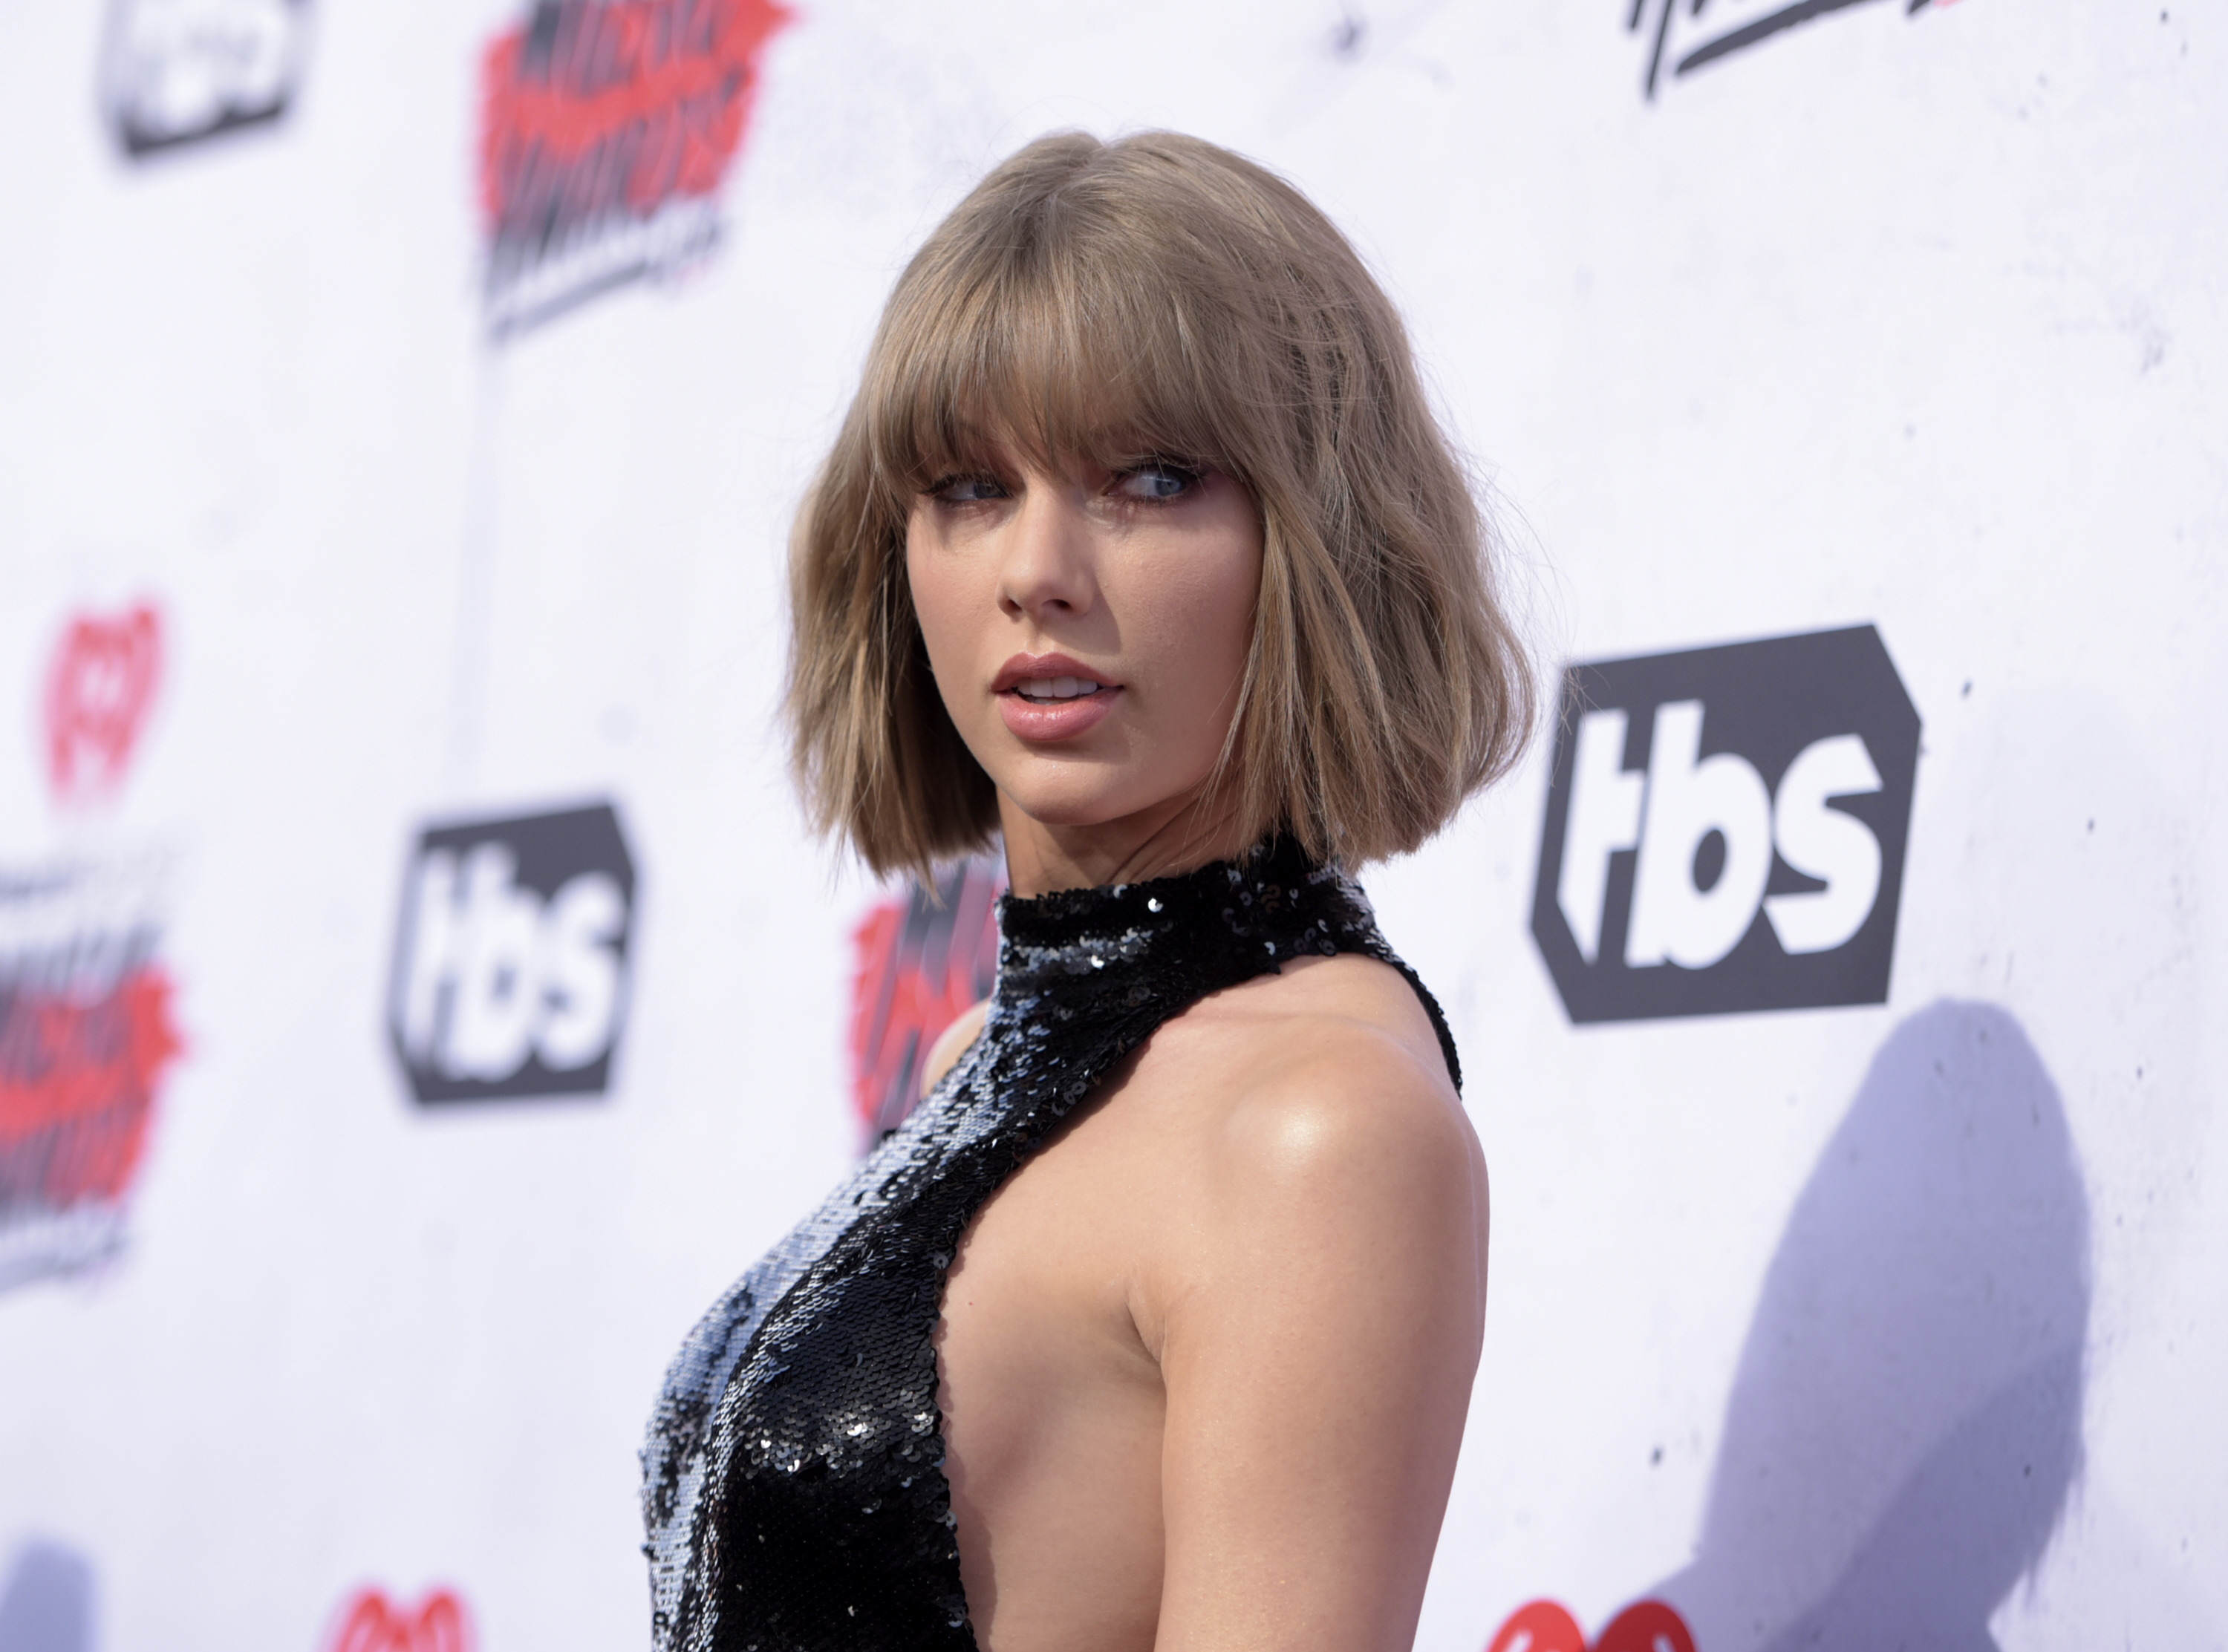 PA 25975933 People Are Accusing Taylor Swift Of Getting Bum Implants Because Of This Photo